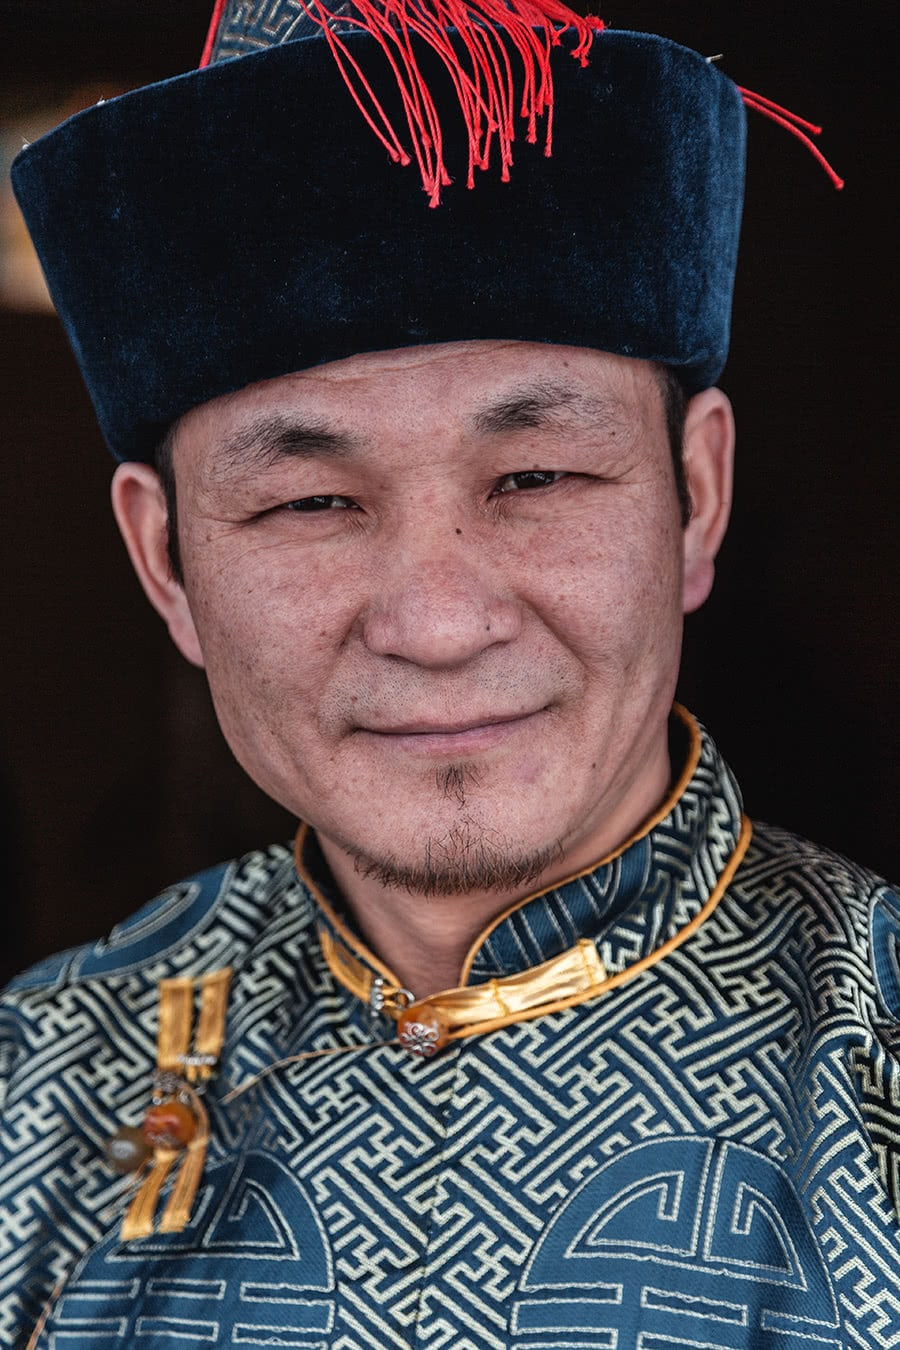 A Buryat man wearing traditional clothing.